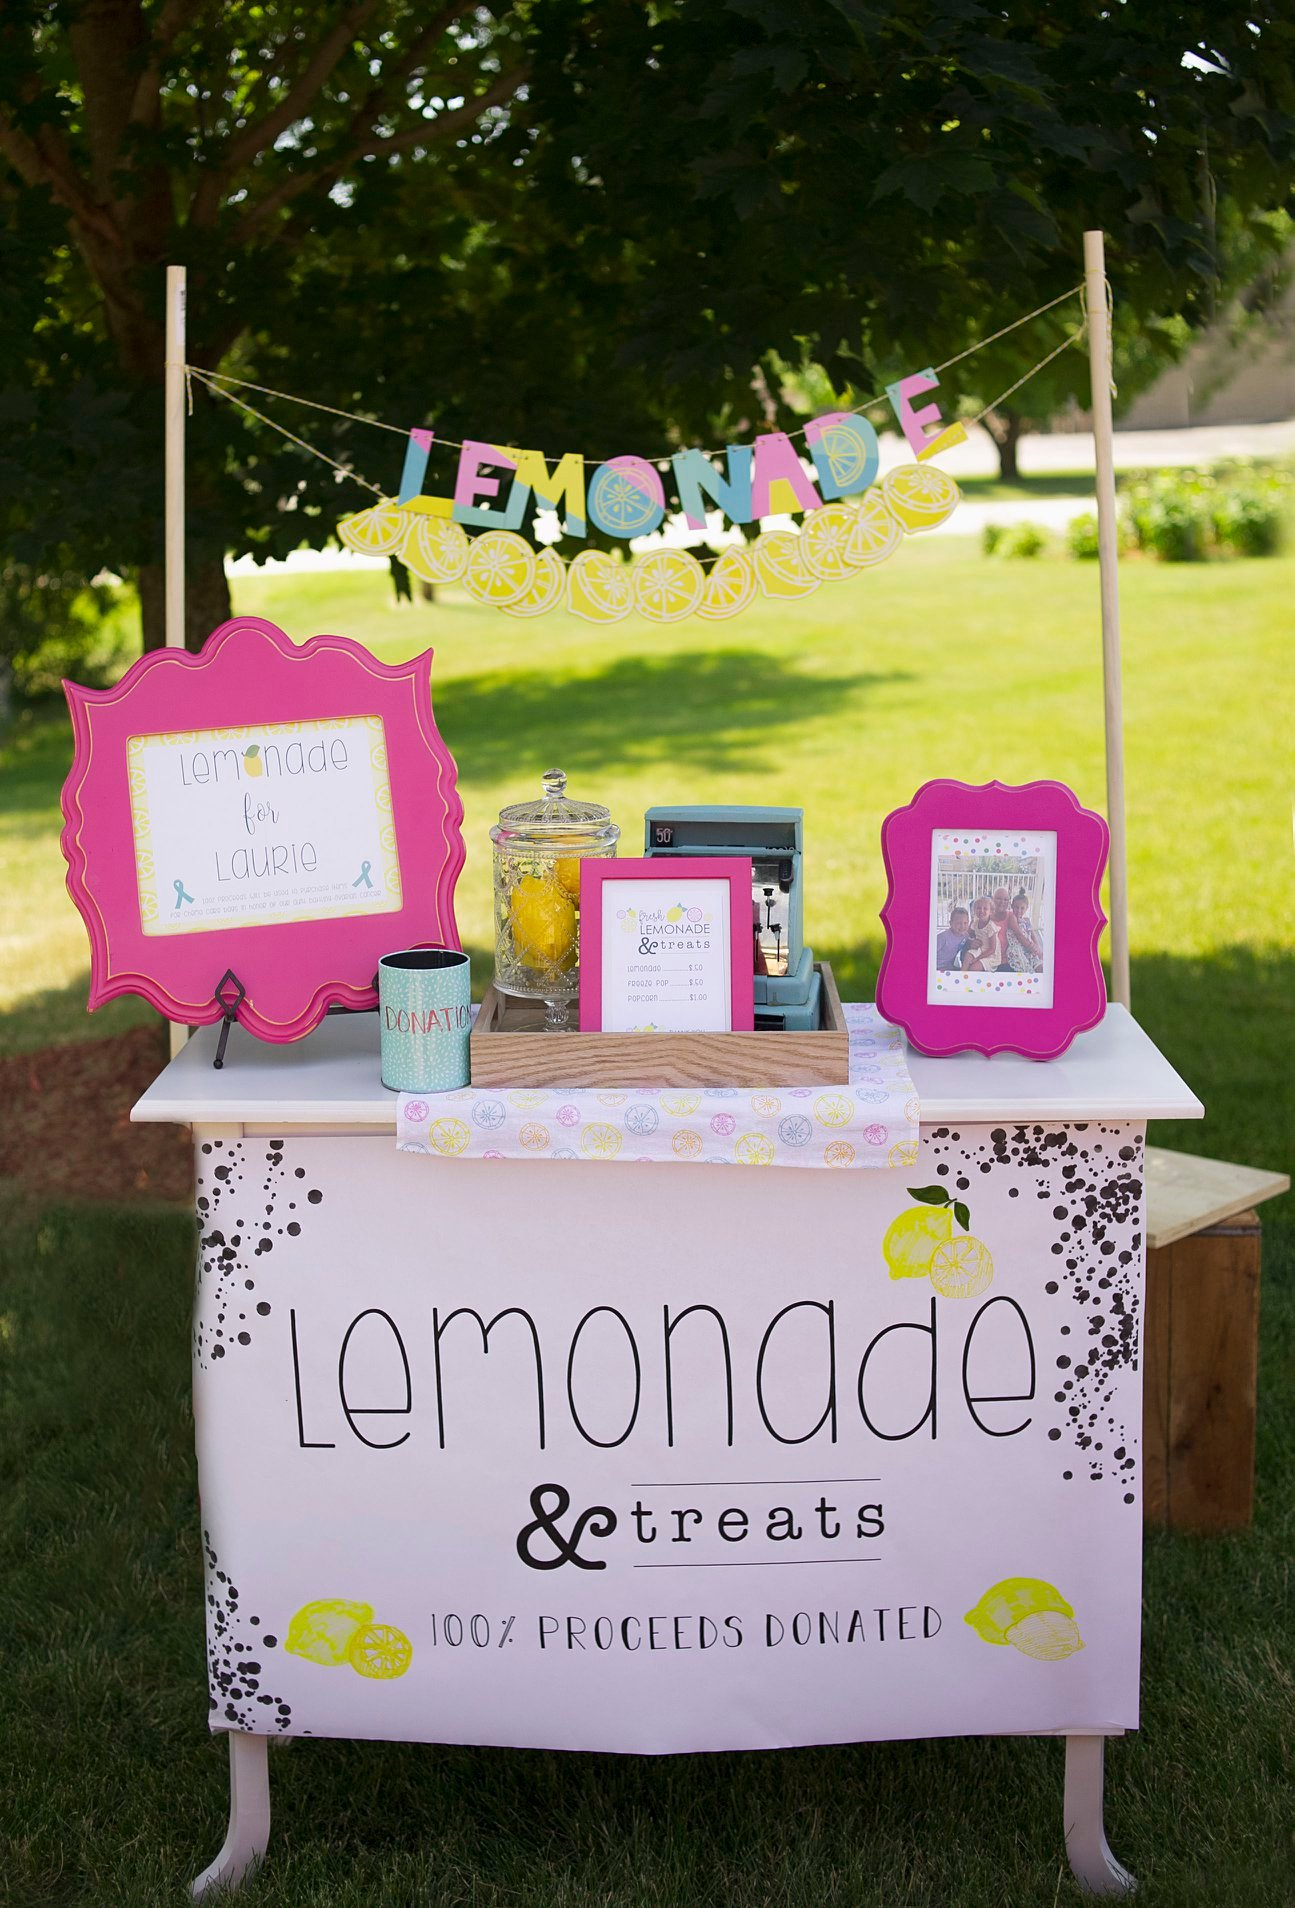 Isn't this the cutest lemonade stand you've ever seen!?